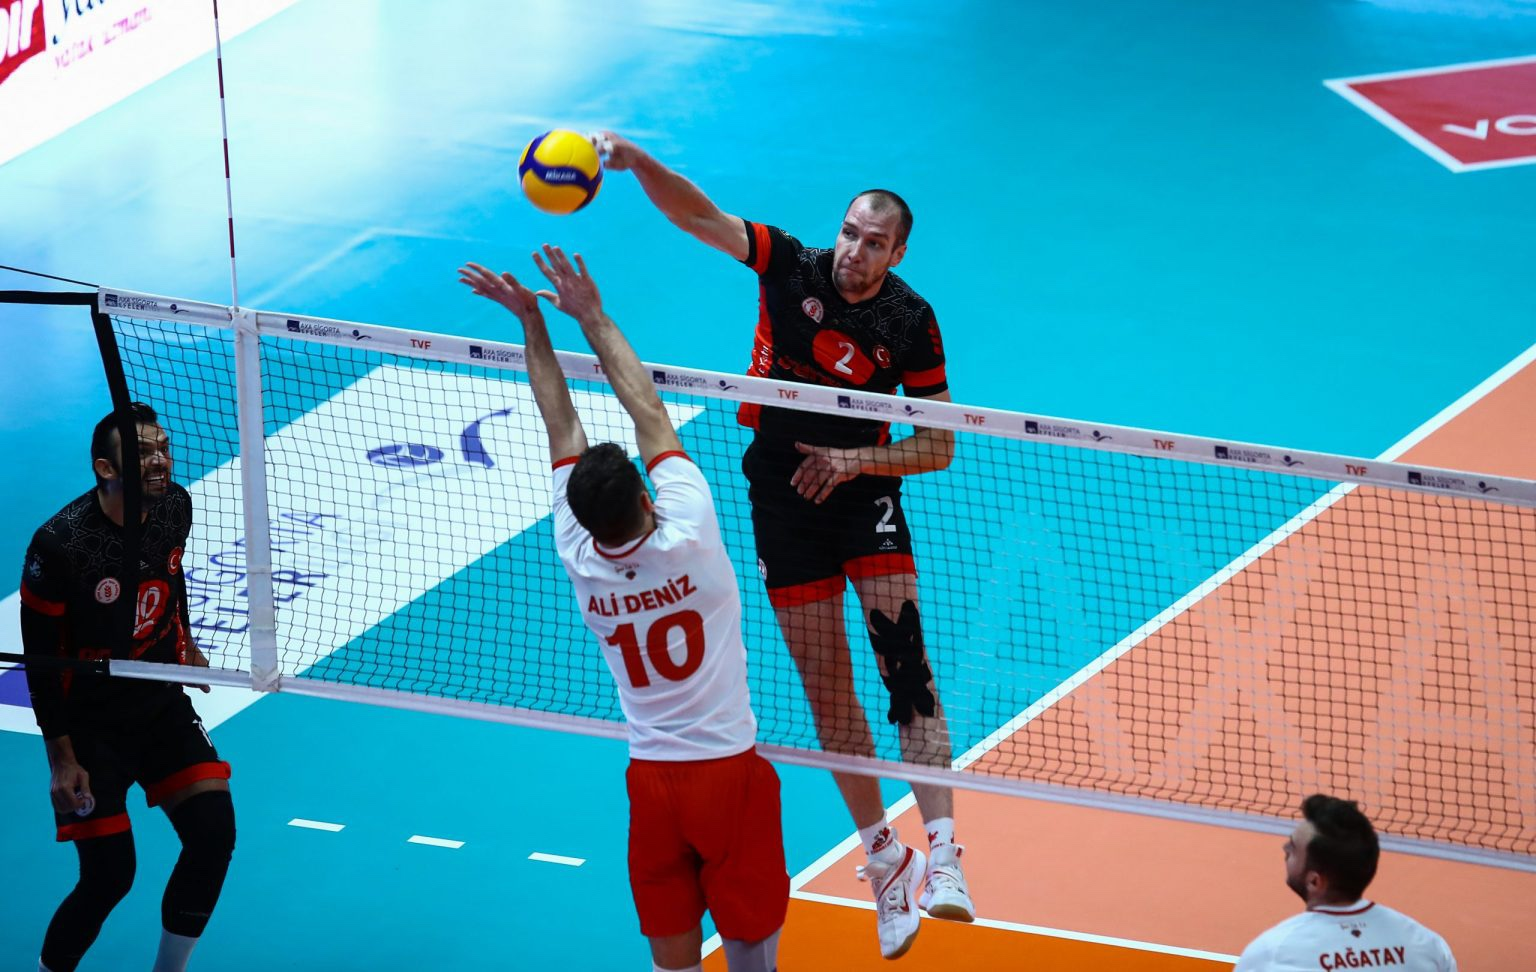 Turkey: Ziraat redeem for round 1 defeat by beating Spor Toto in big match, Bursa stun Galatasaray and the others of Round 2